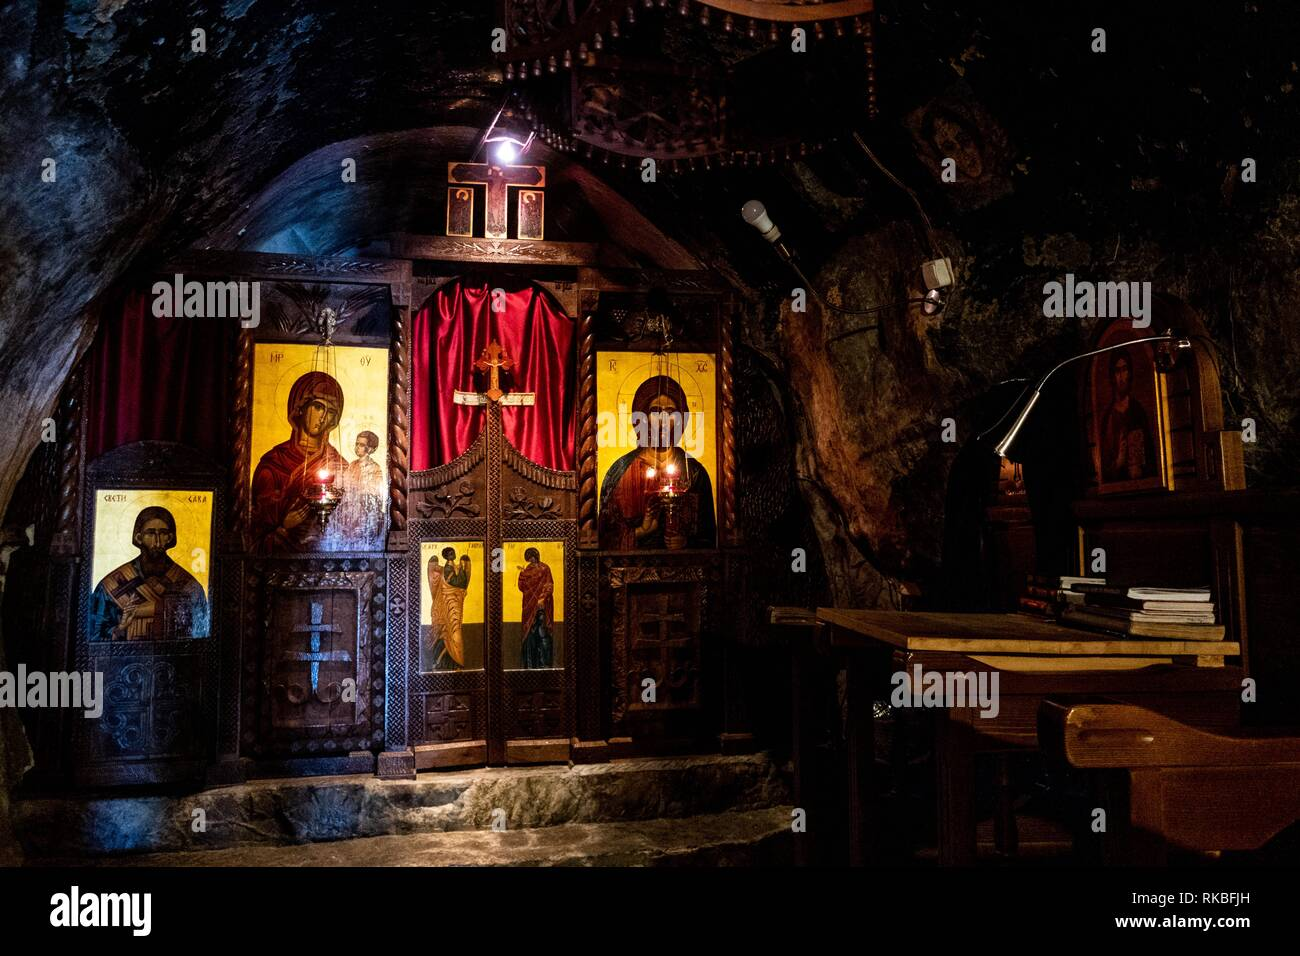 Colourful sanctuary with religious symbols in the cave monastery Dajbabe, Podgorica, Montenegro - Stock Image